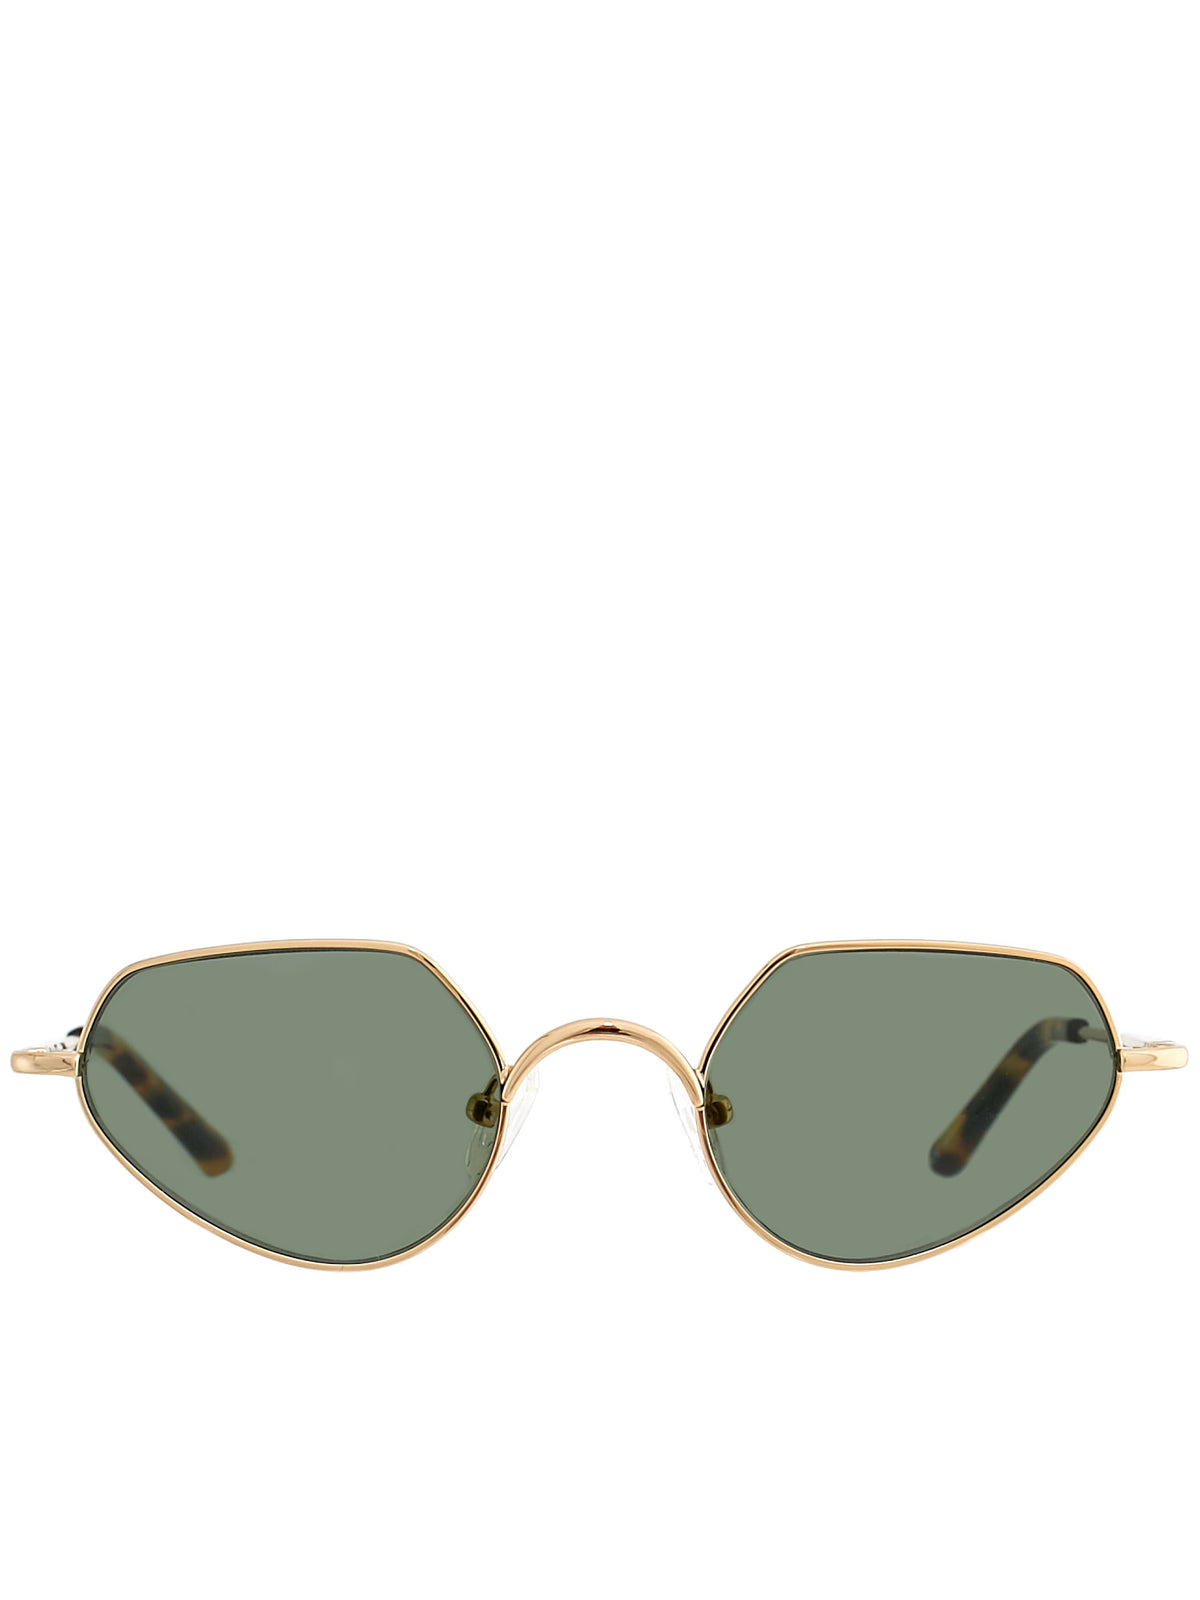 5fb18bcd2c5  Gold Linda Farrow Edition Angular Sunglasses  (DVN176C3SUN-YG-PETROL) ...